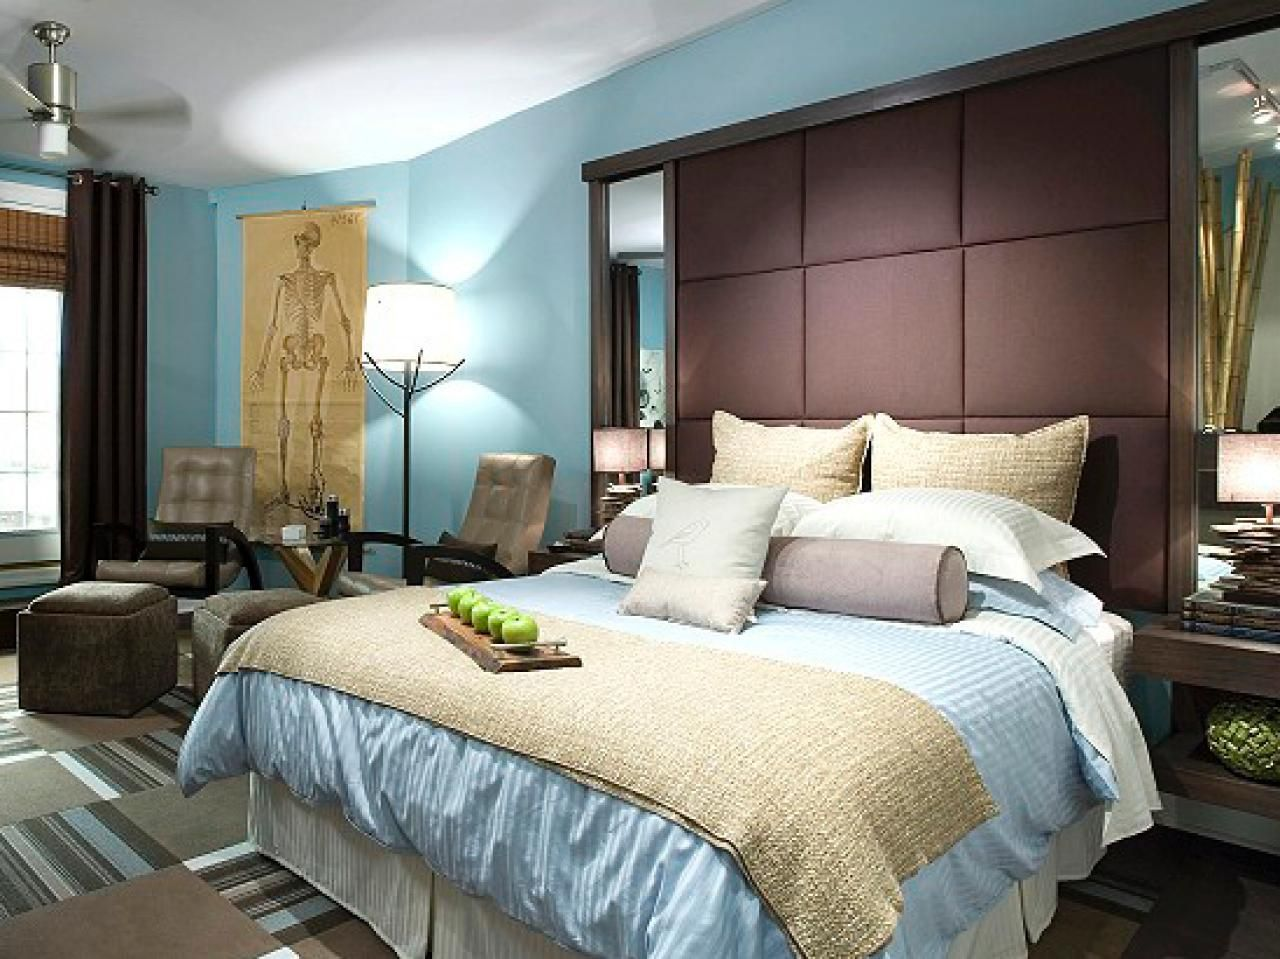 10 Divine Master Bedrooms By Candice Olson Bedroom Decorating Ideas For Kids Guest Nursery Hgtv